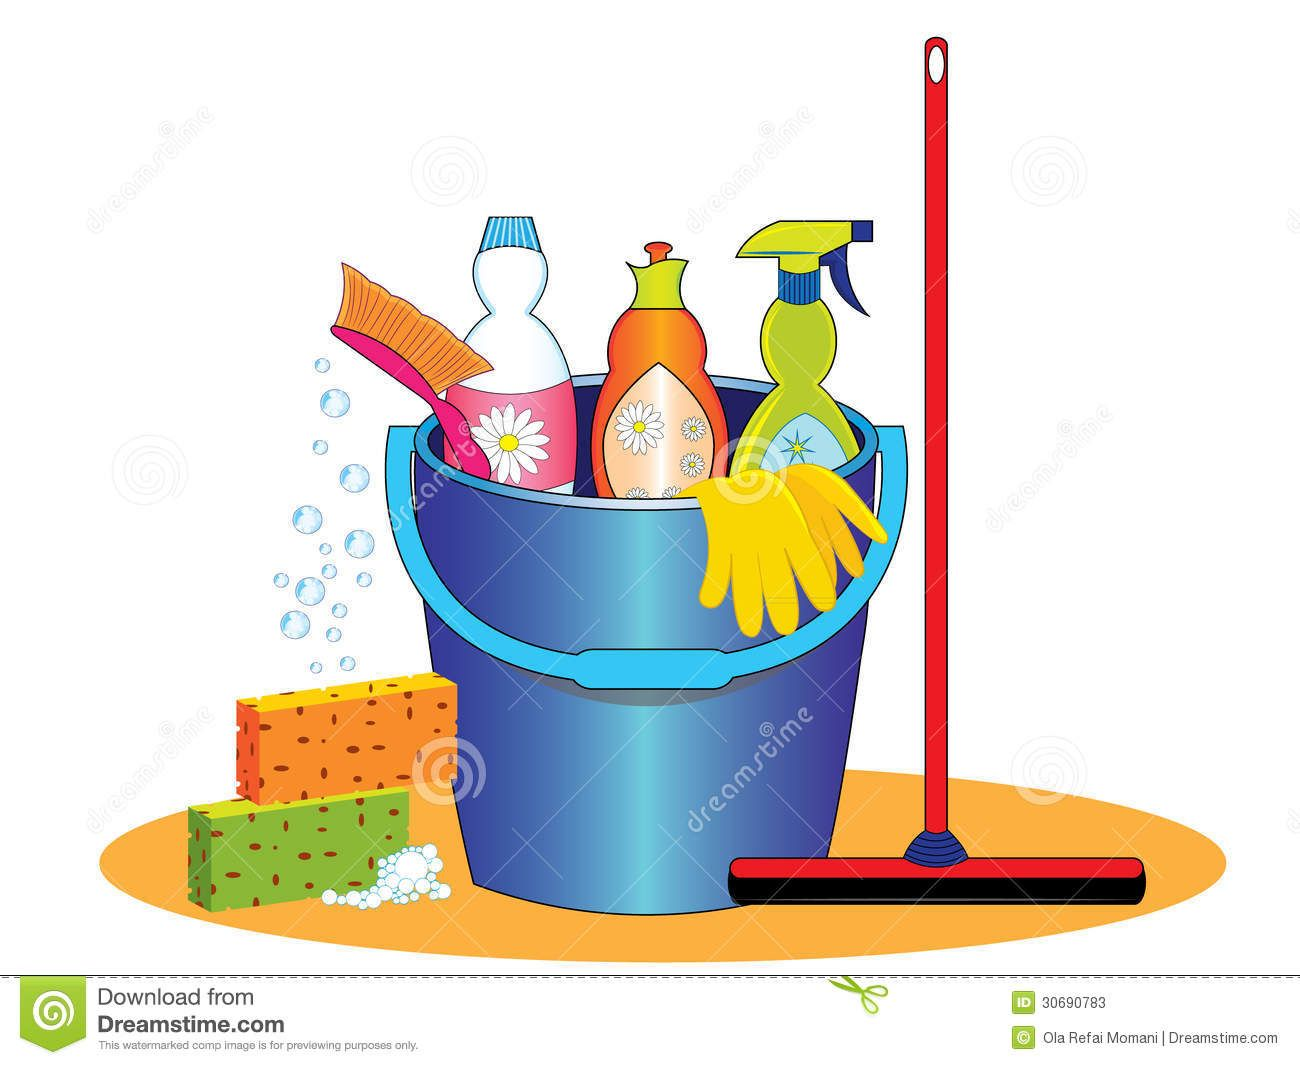 Housekeeping clipart clean hand. Cleaning supplies clip art